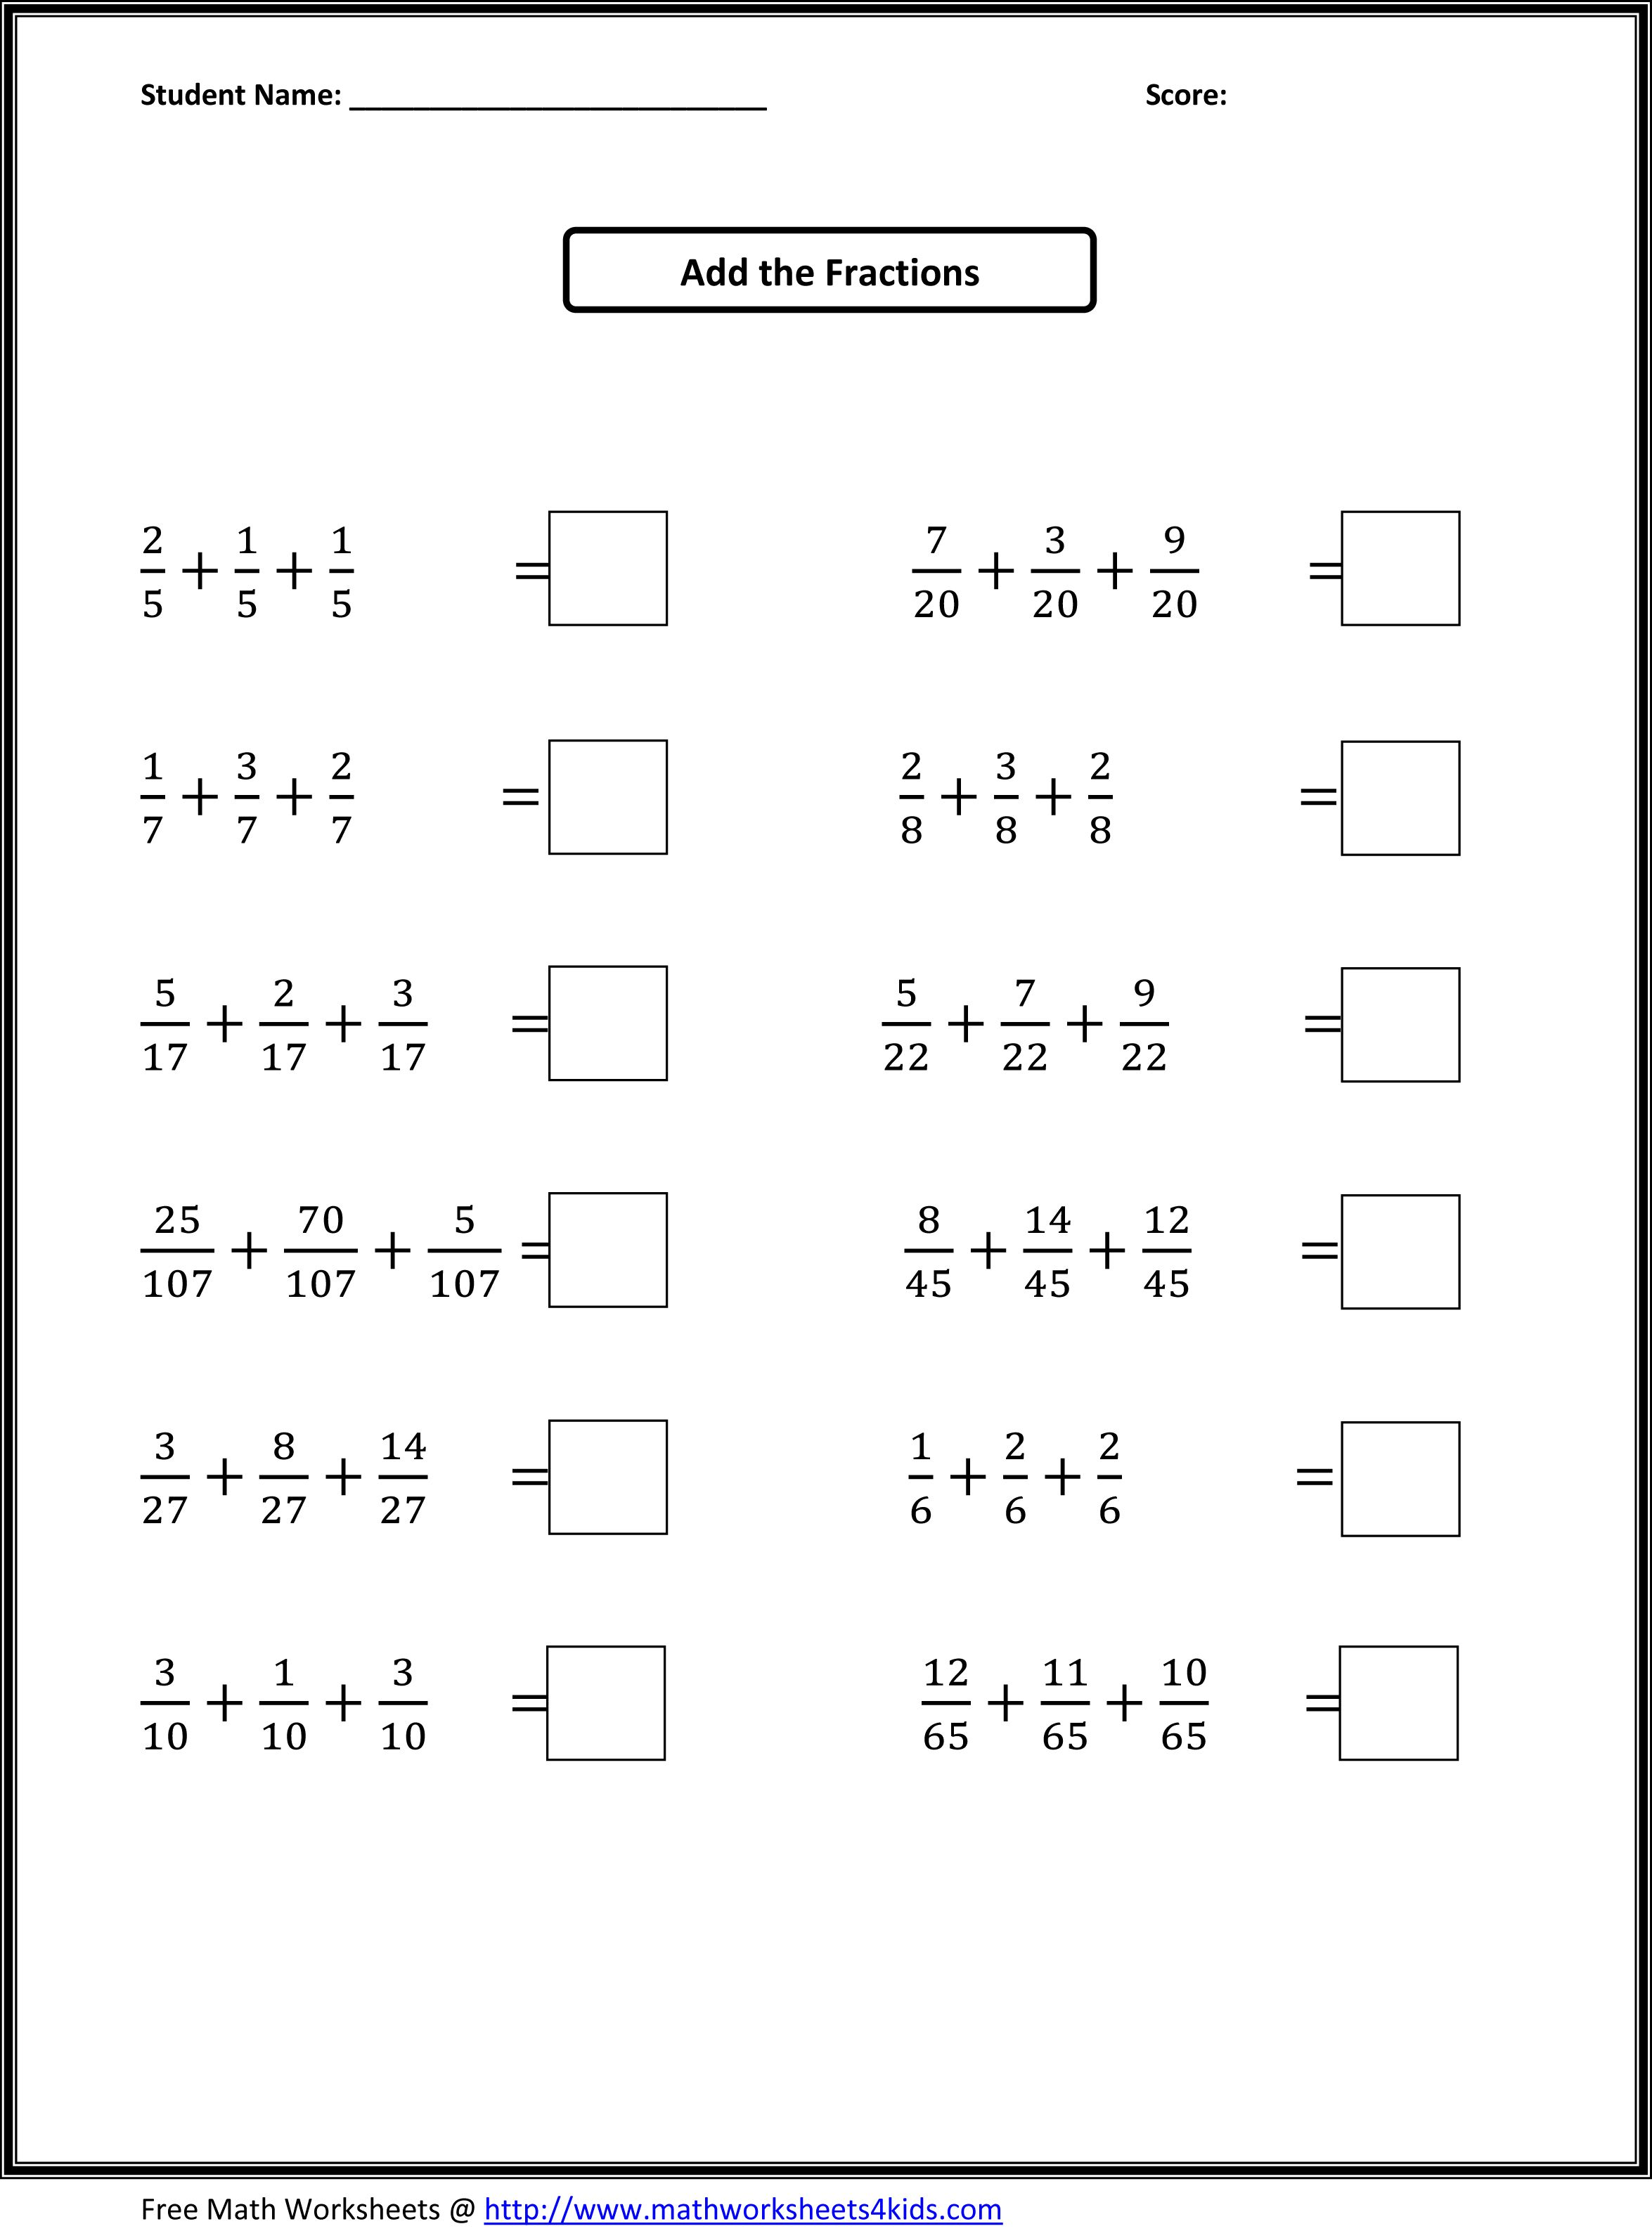 Uncategorized Math Worksheets On Fractions worksheets for all early ed grades topics of math fractions